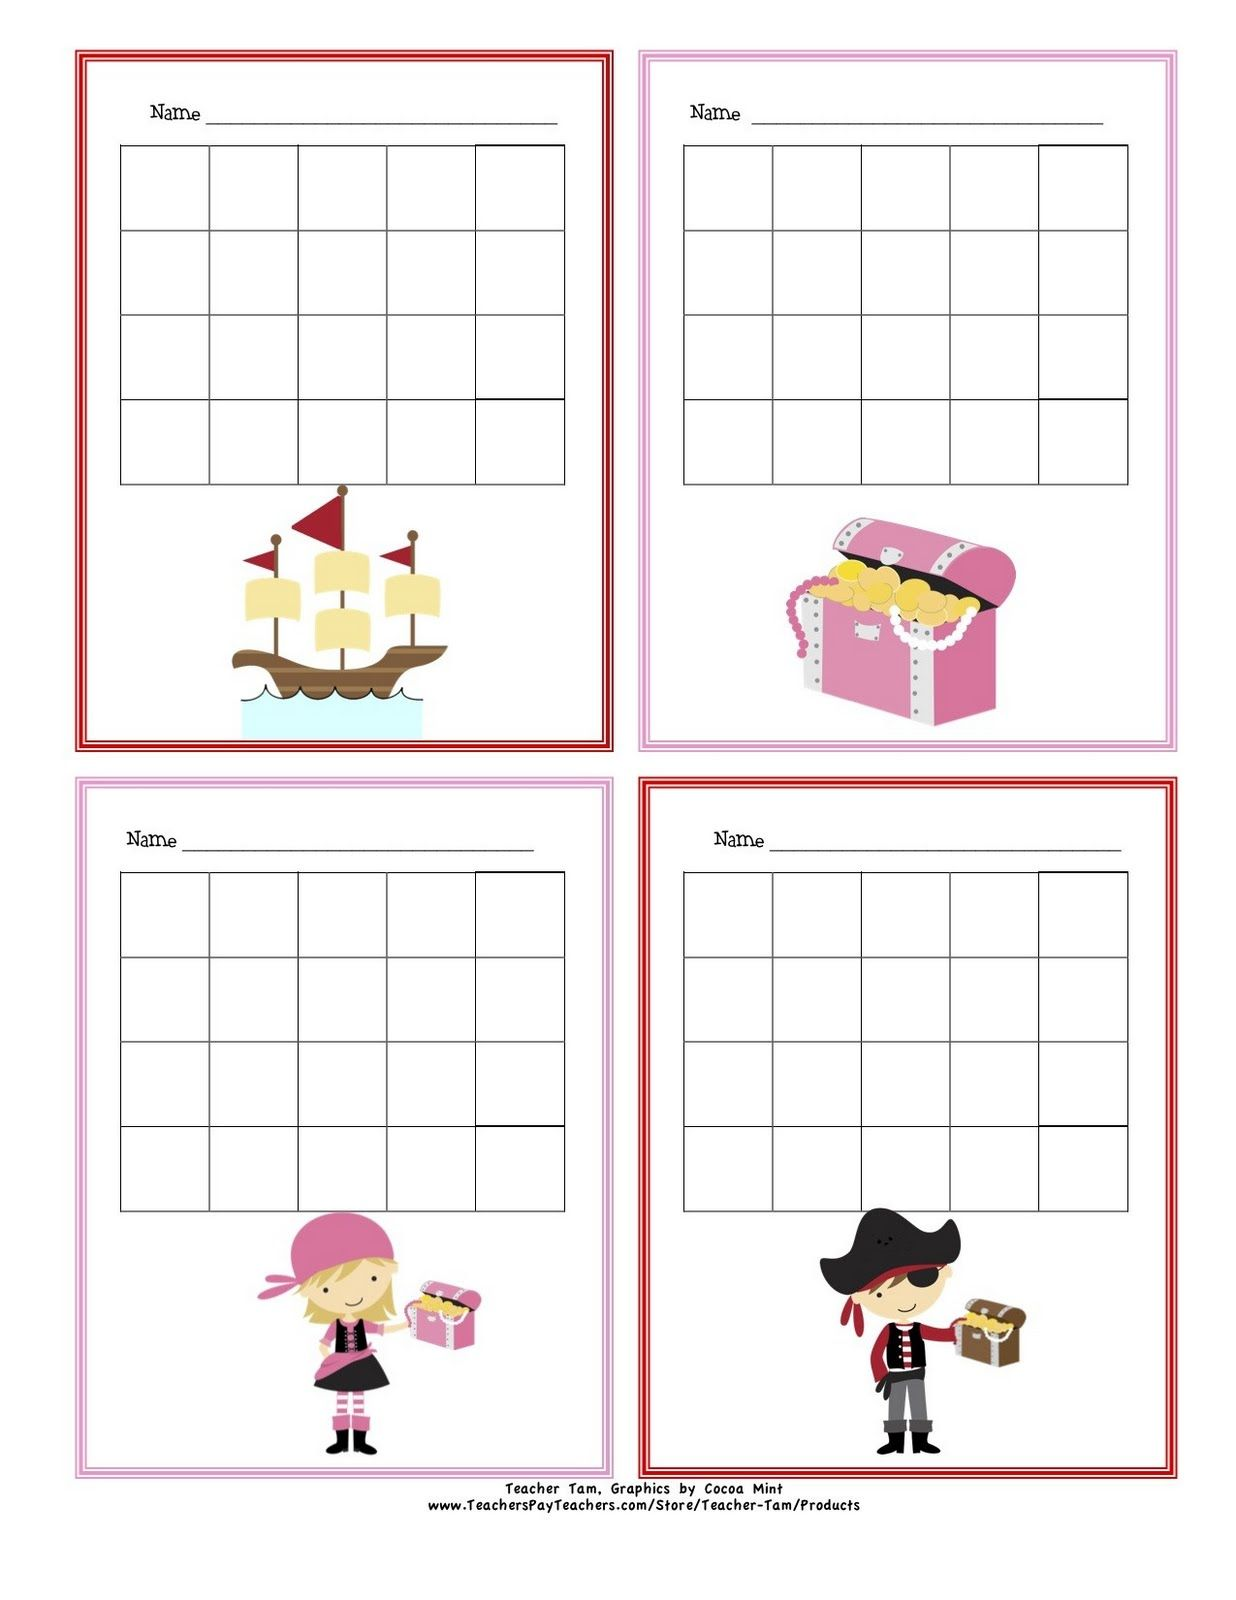 picture about Free Printable Incentive Charts called absolutely free printable sticker charts jungle concept - Google Seem